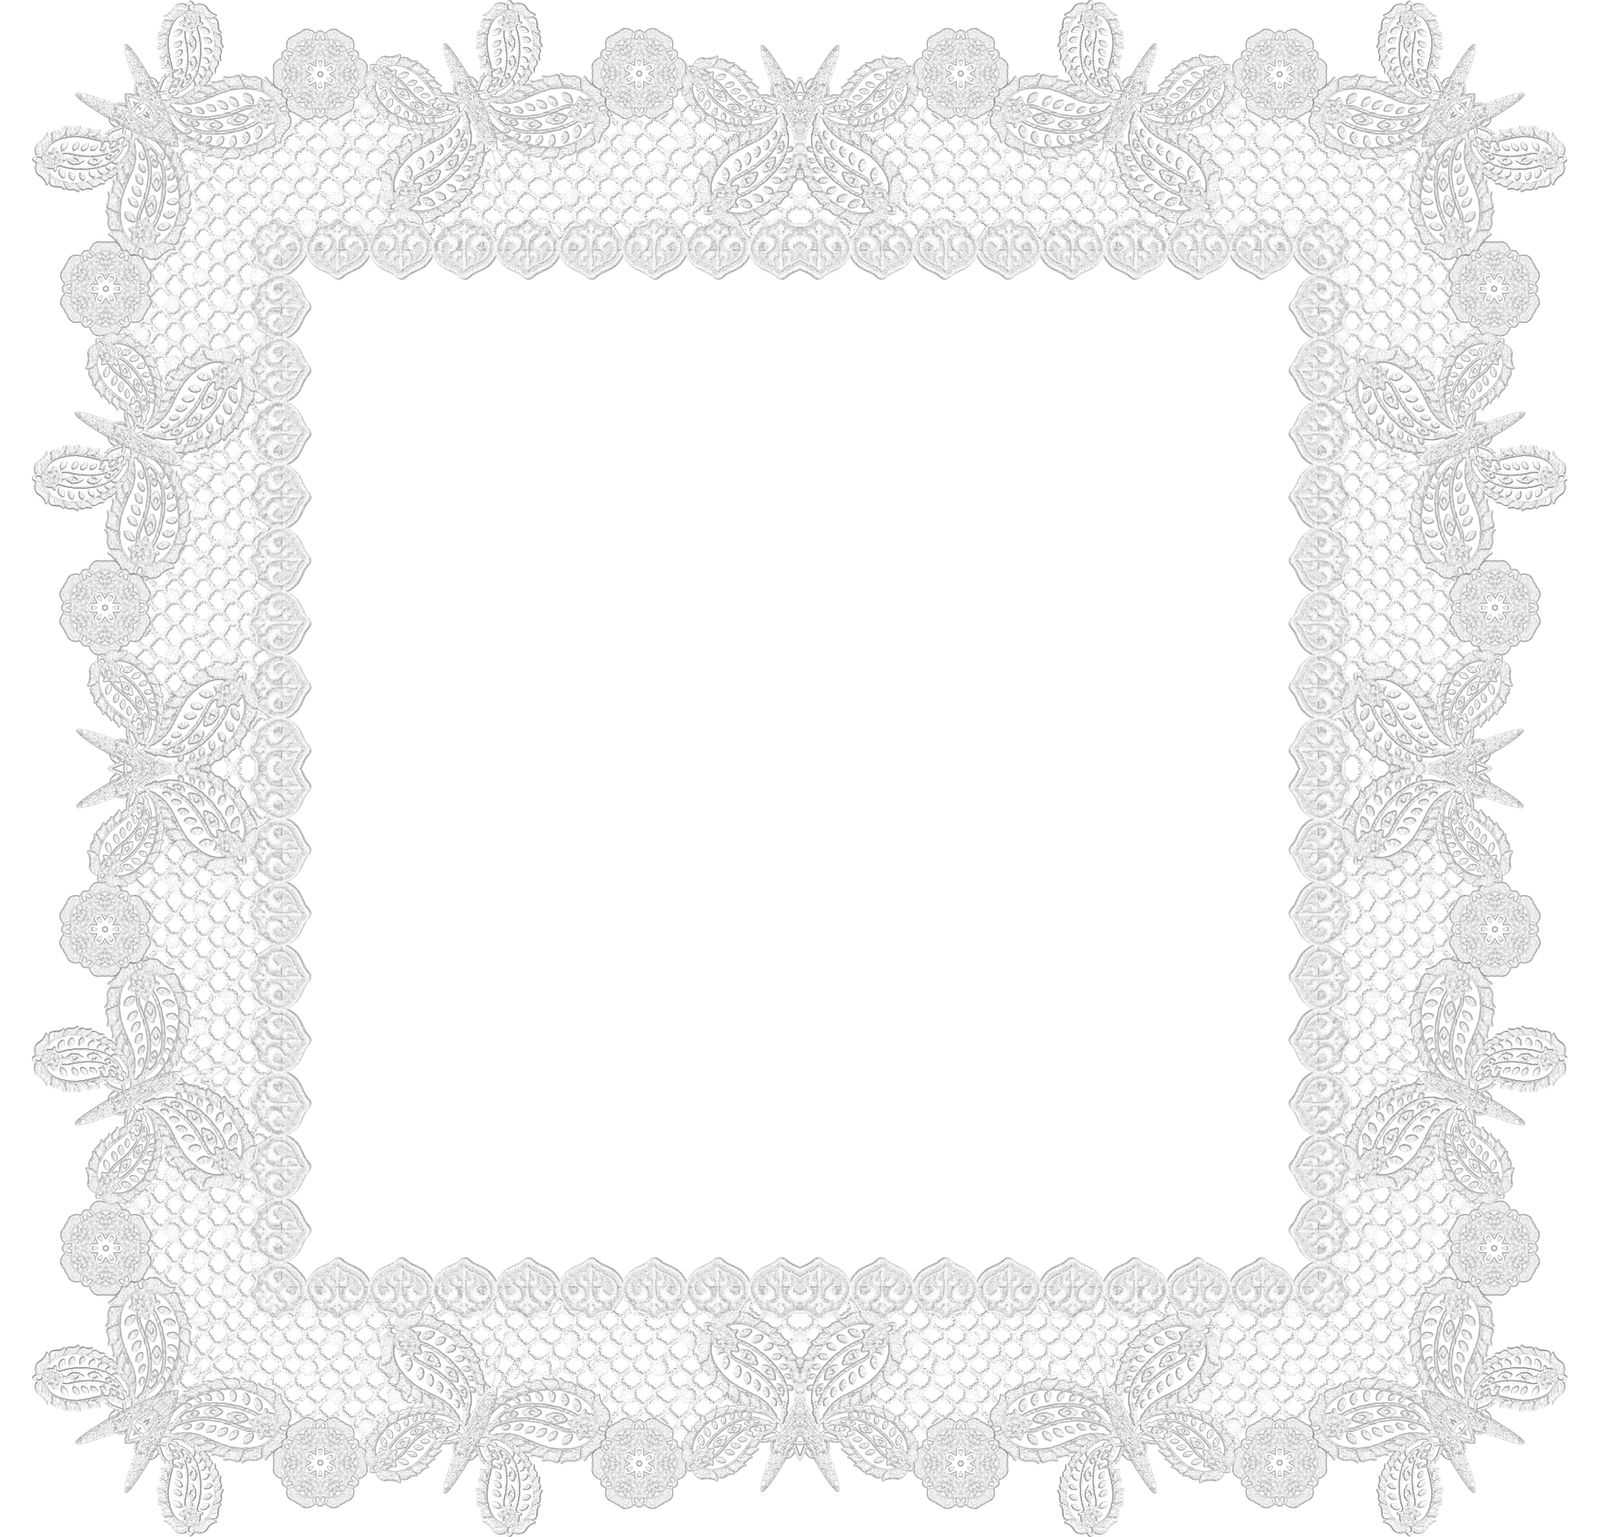 White lace frame png. Free frames and borders